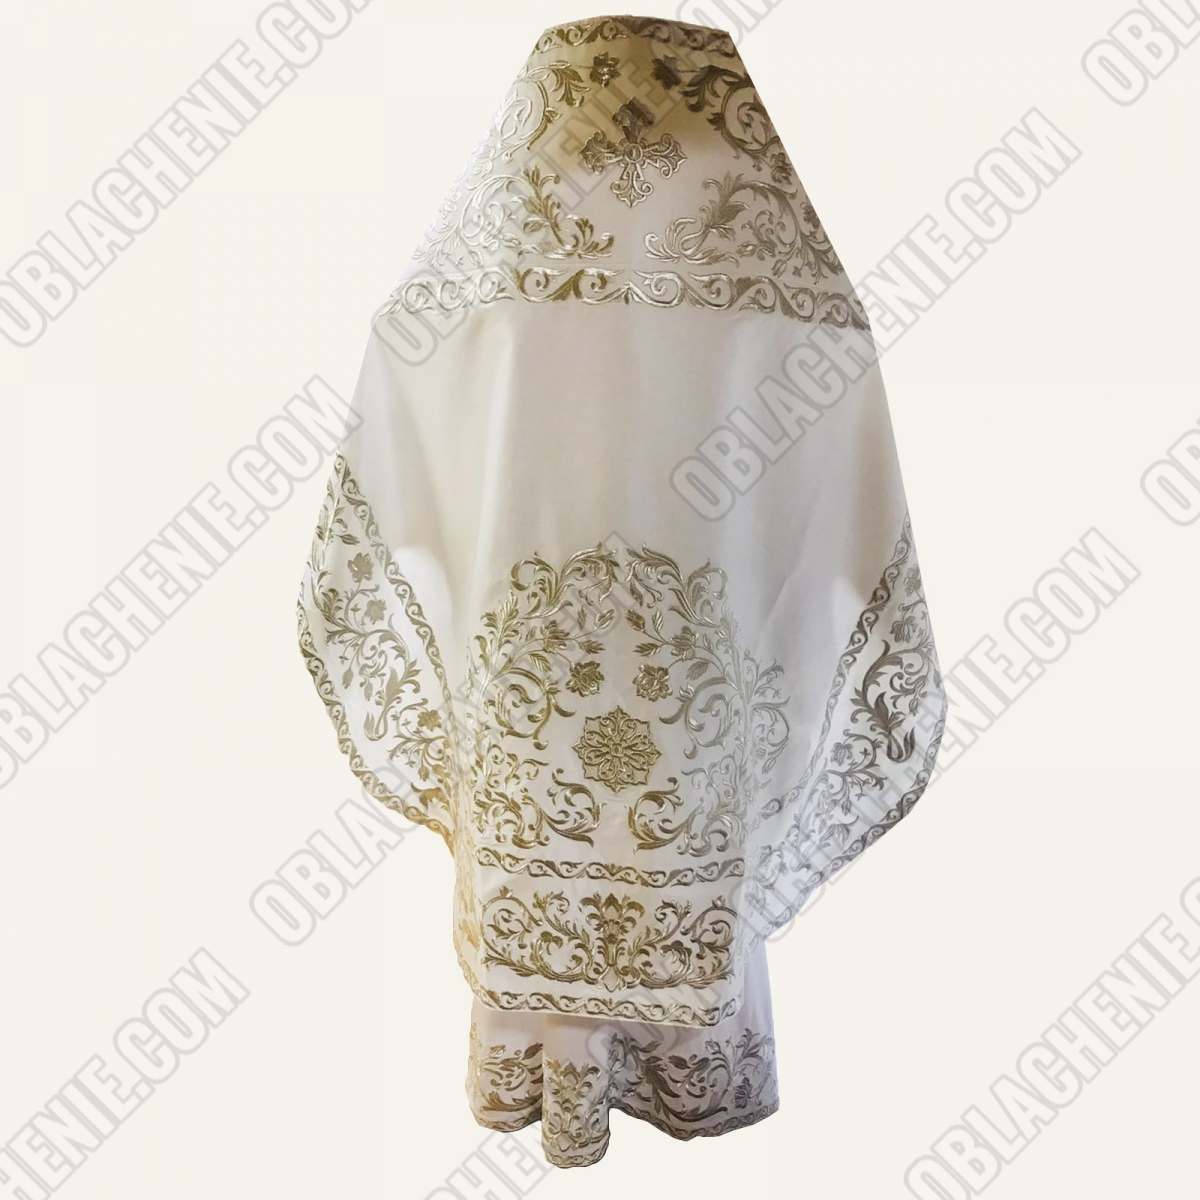 EMBROIDERED PRIEST'S VESTMENTS 11316